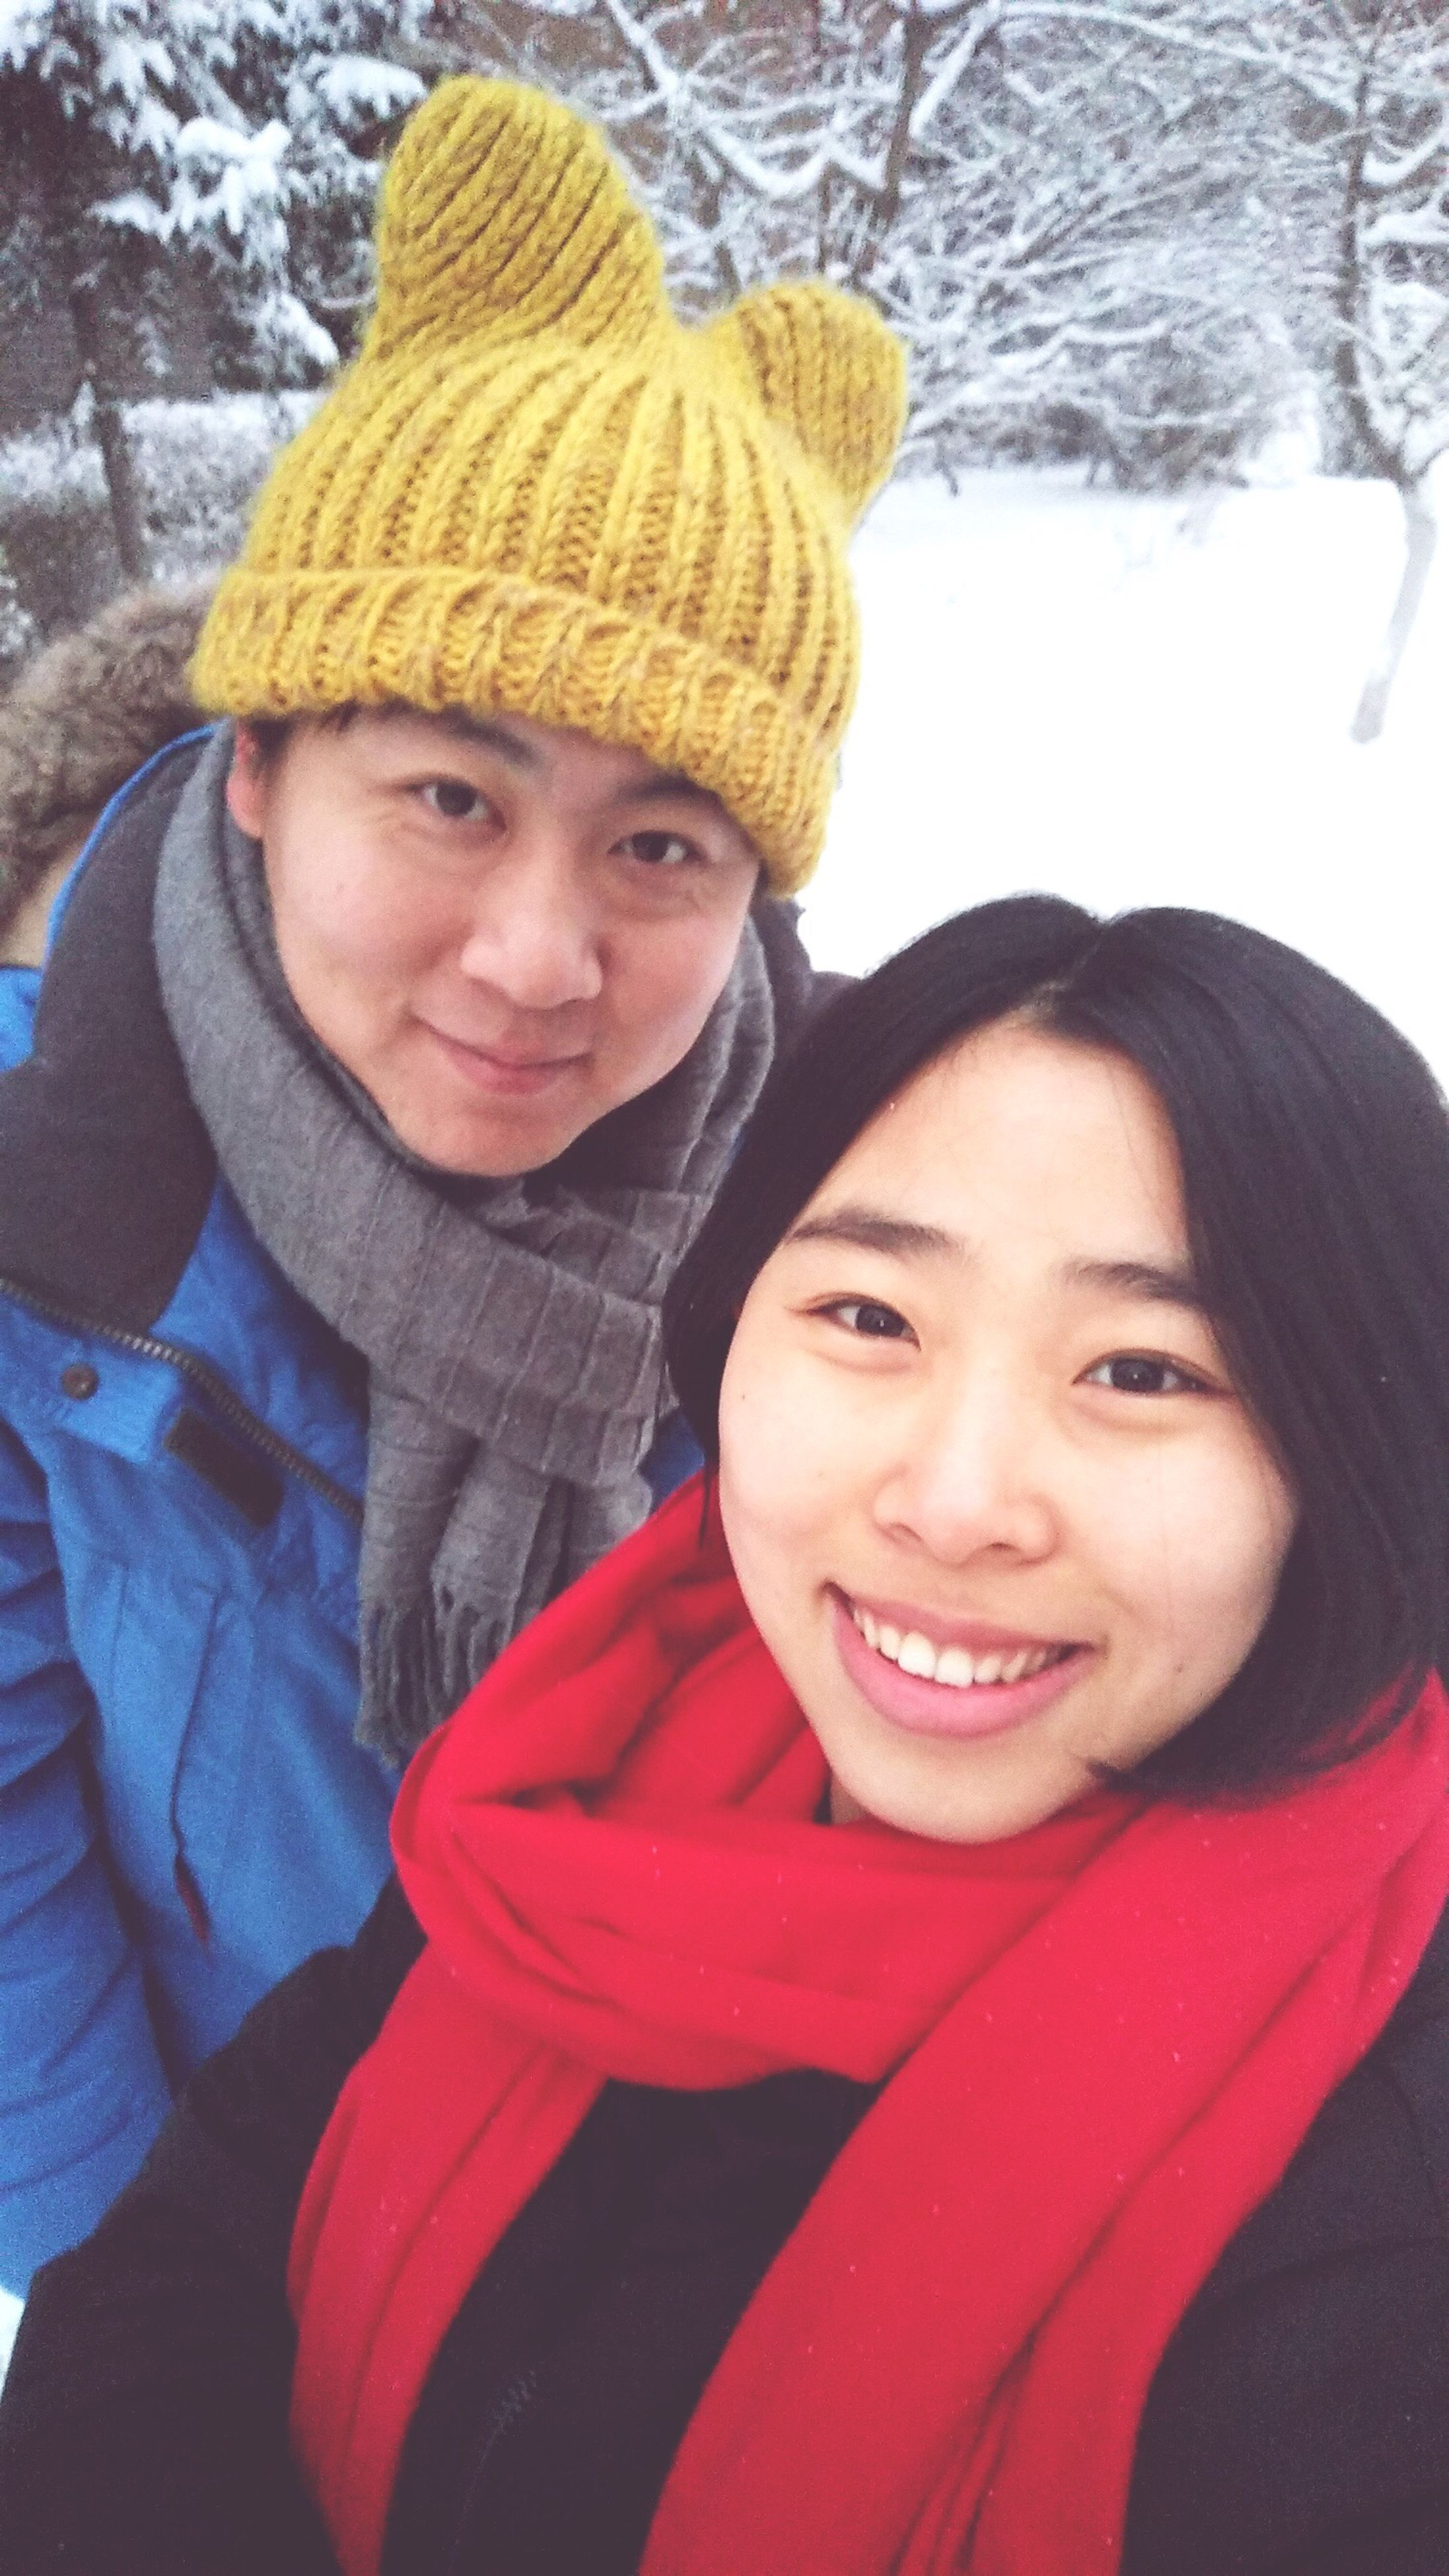 two people, winter, cold temperature, knit hat, lifestyles, couple - relationship, red, warm clothing, snow, love, heterosexual couple, togetherness, young adult, women, young women, smiling, bonding, real people, portrait, happiness, close-up, outdoors, men, cheerful, people, nature, adult, adults only, day